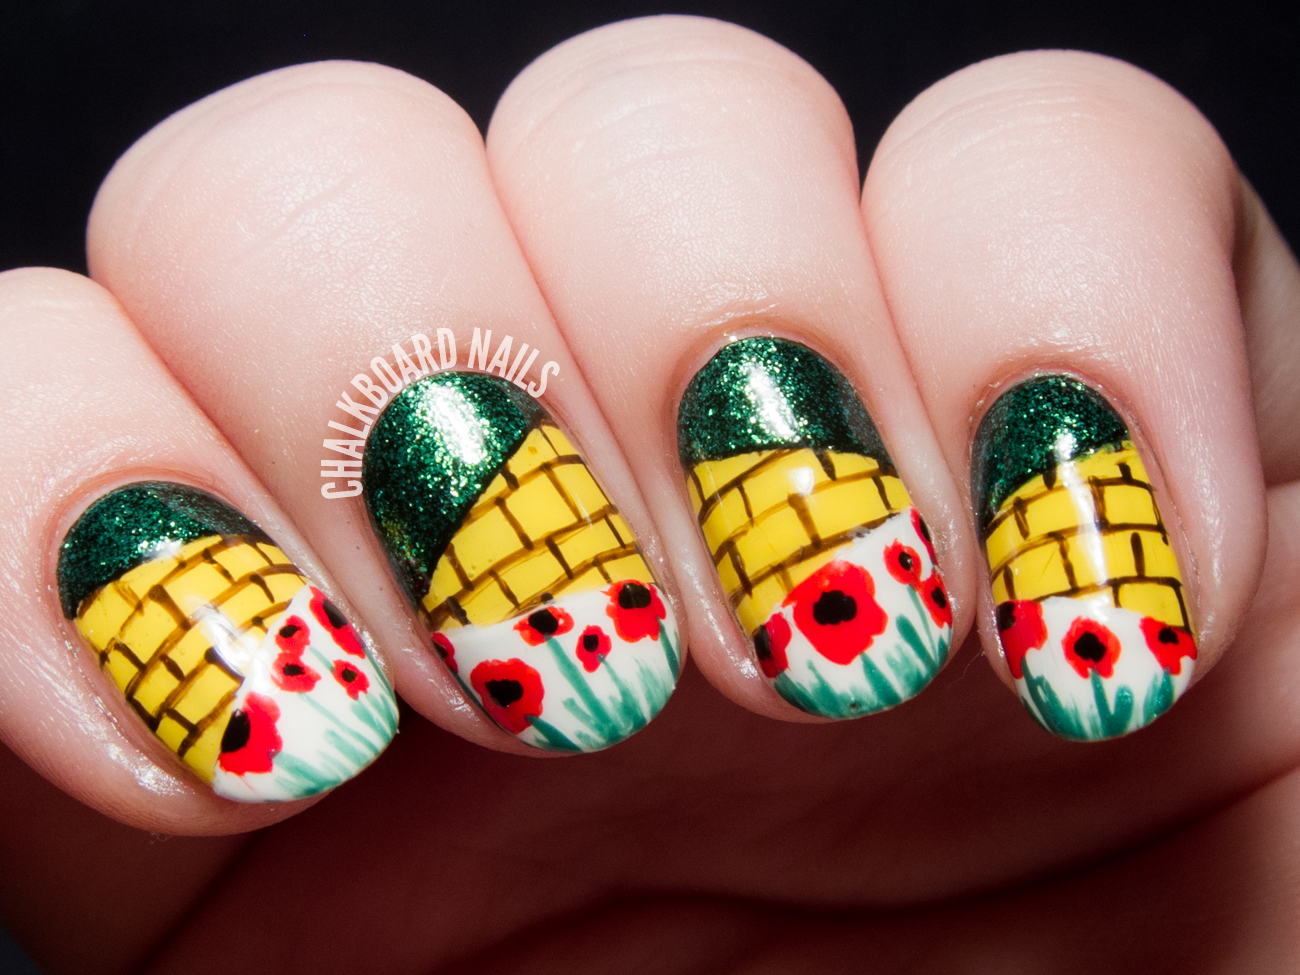 The Wonderful Wizard of Oz nail art by @chalkboardnails